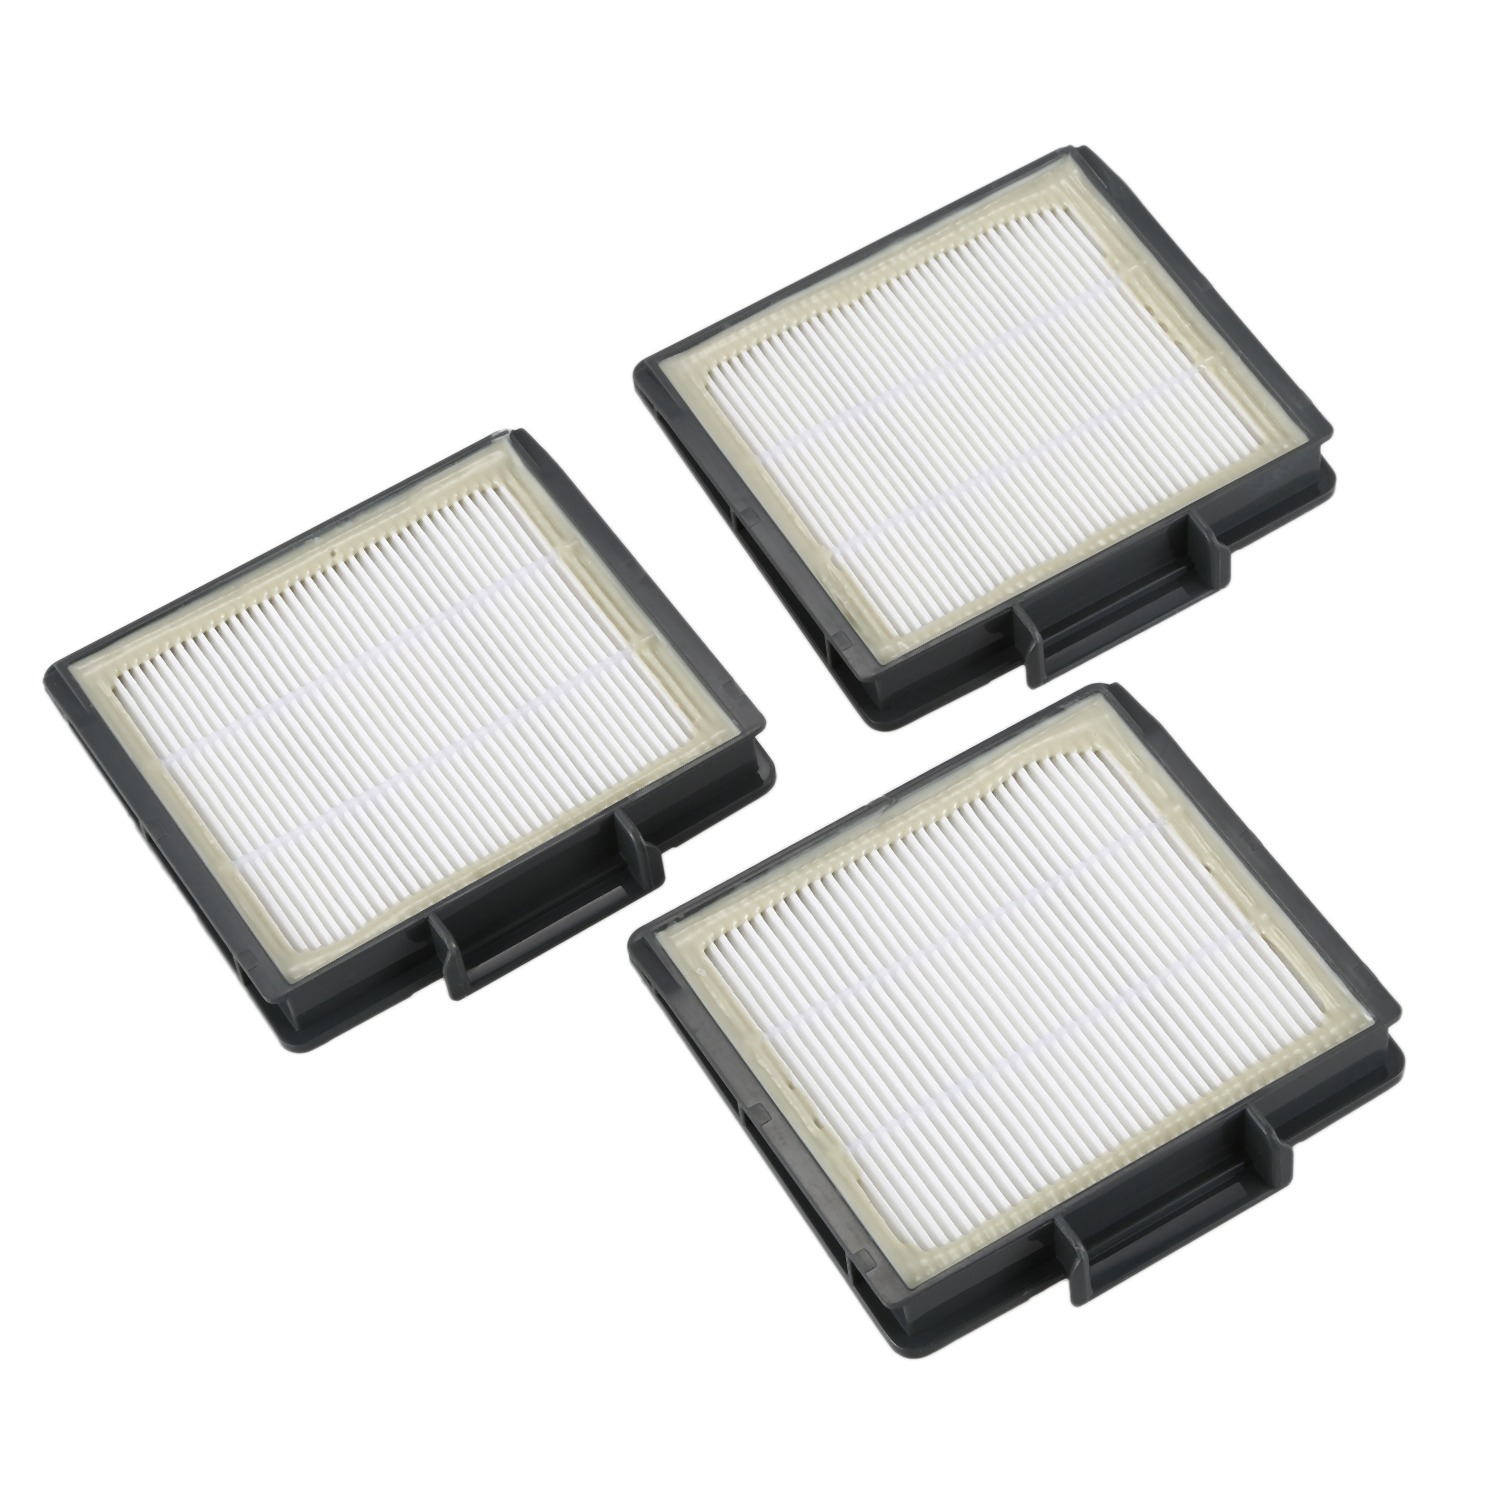 New Hot 3pcs Pre-motor Hepa Filters For Shark Ion Robot Rv700_n Rv720_n Rv850 Rv851wv Rv850brn/wv Vacuum Cleaner Part Fit # Rv To Win Warm Praise From Customers Vacuum Cleaner Parts Home Appliances